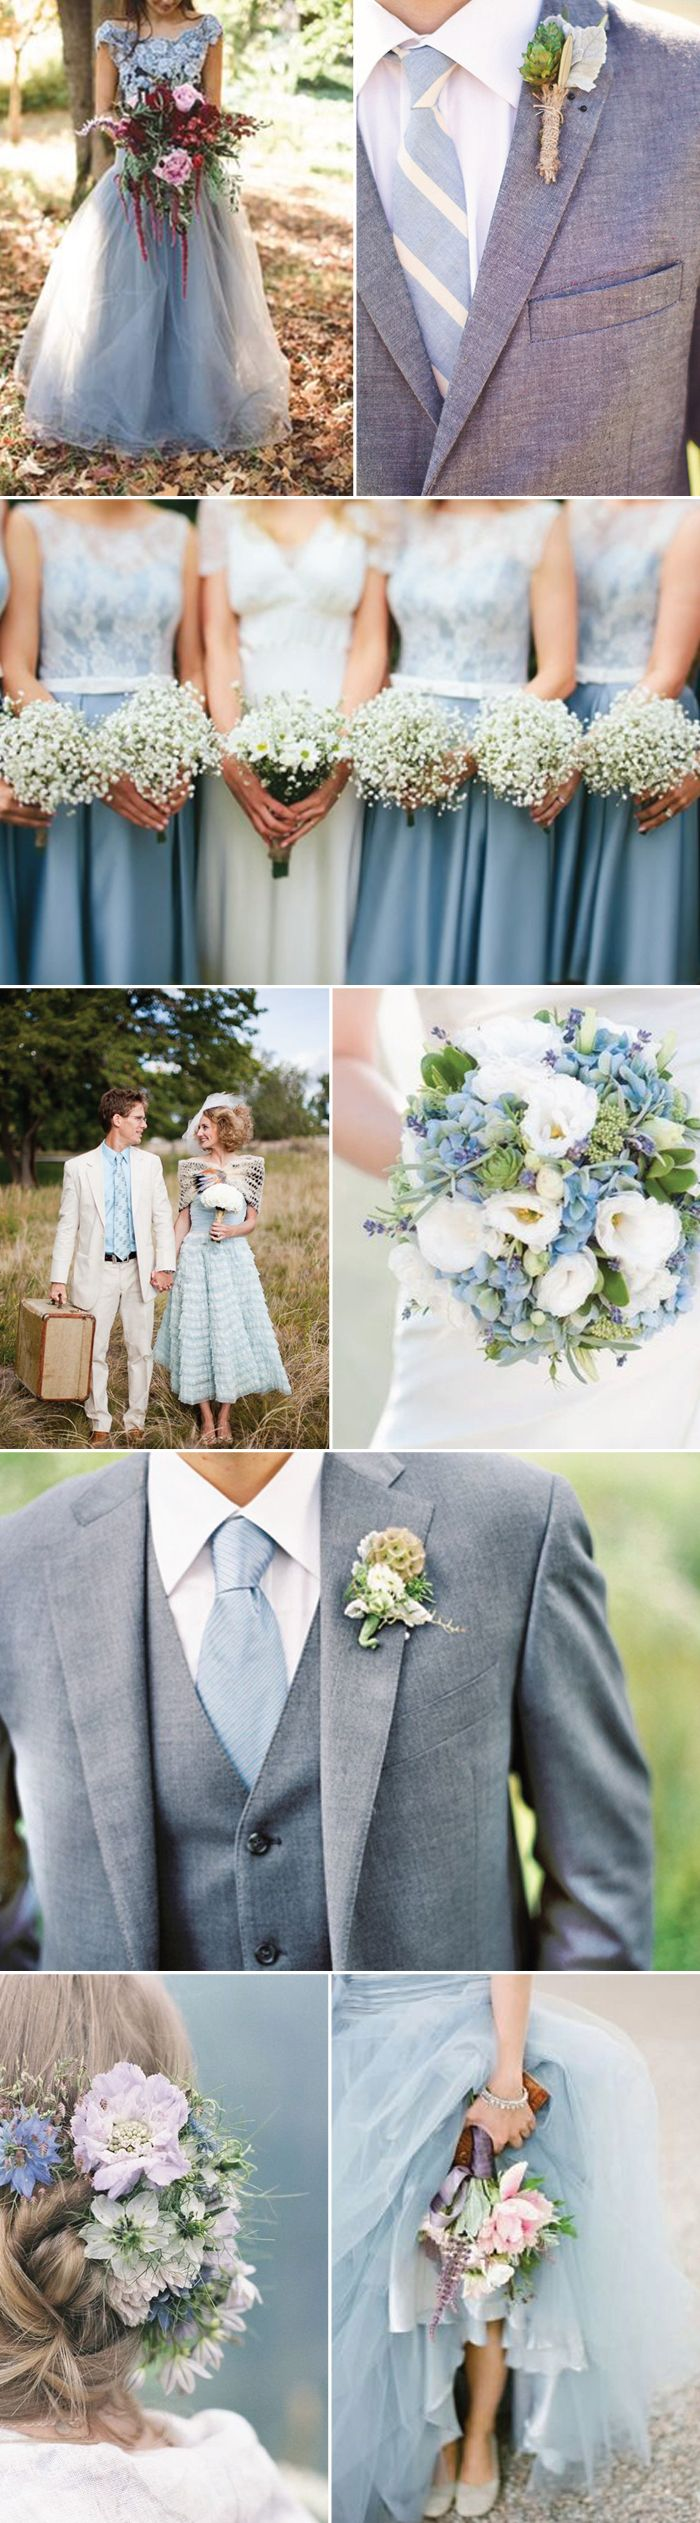 Pantone's Color 2016: Serenity blue wedding inspiration